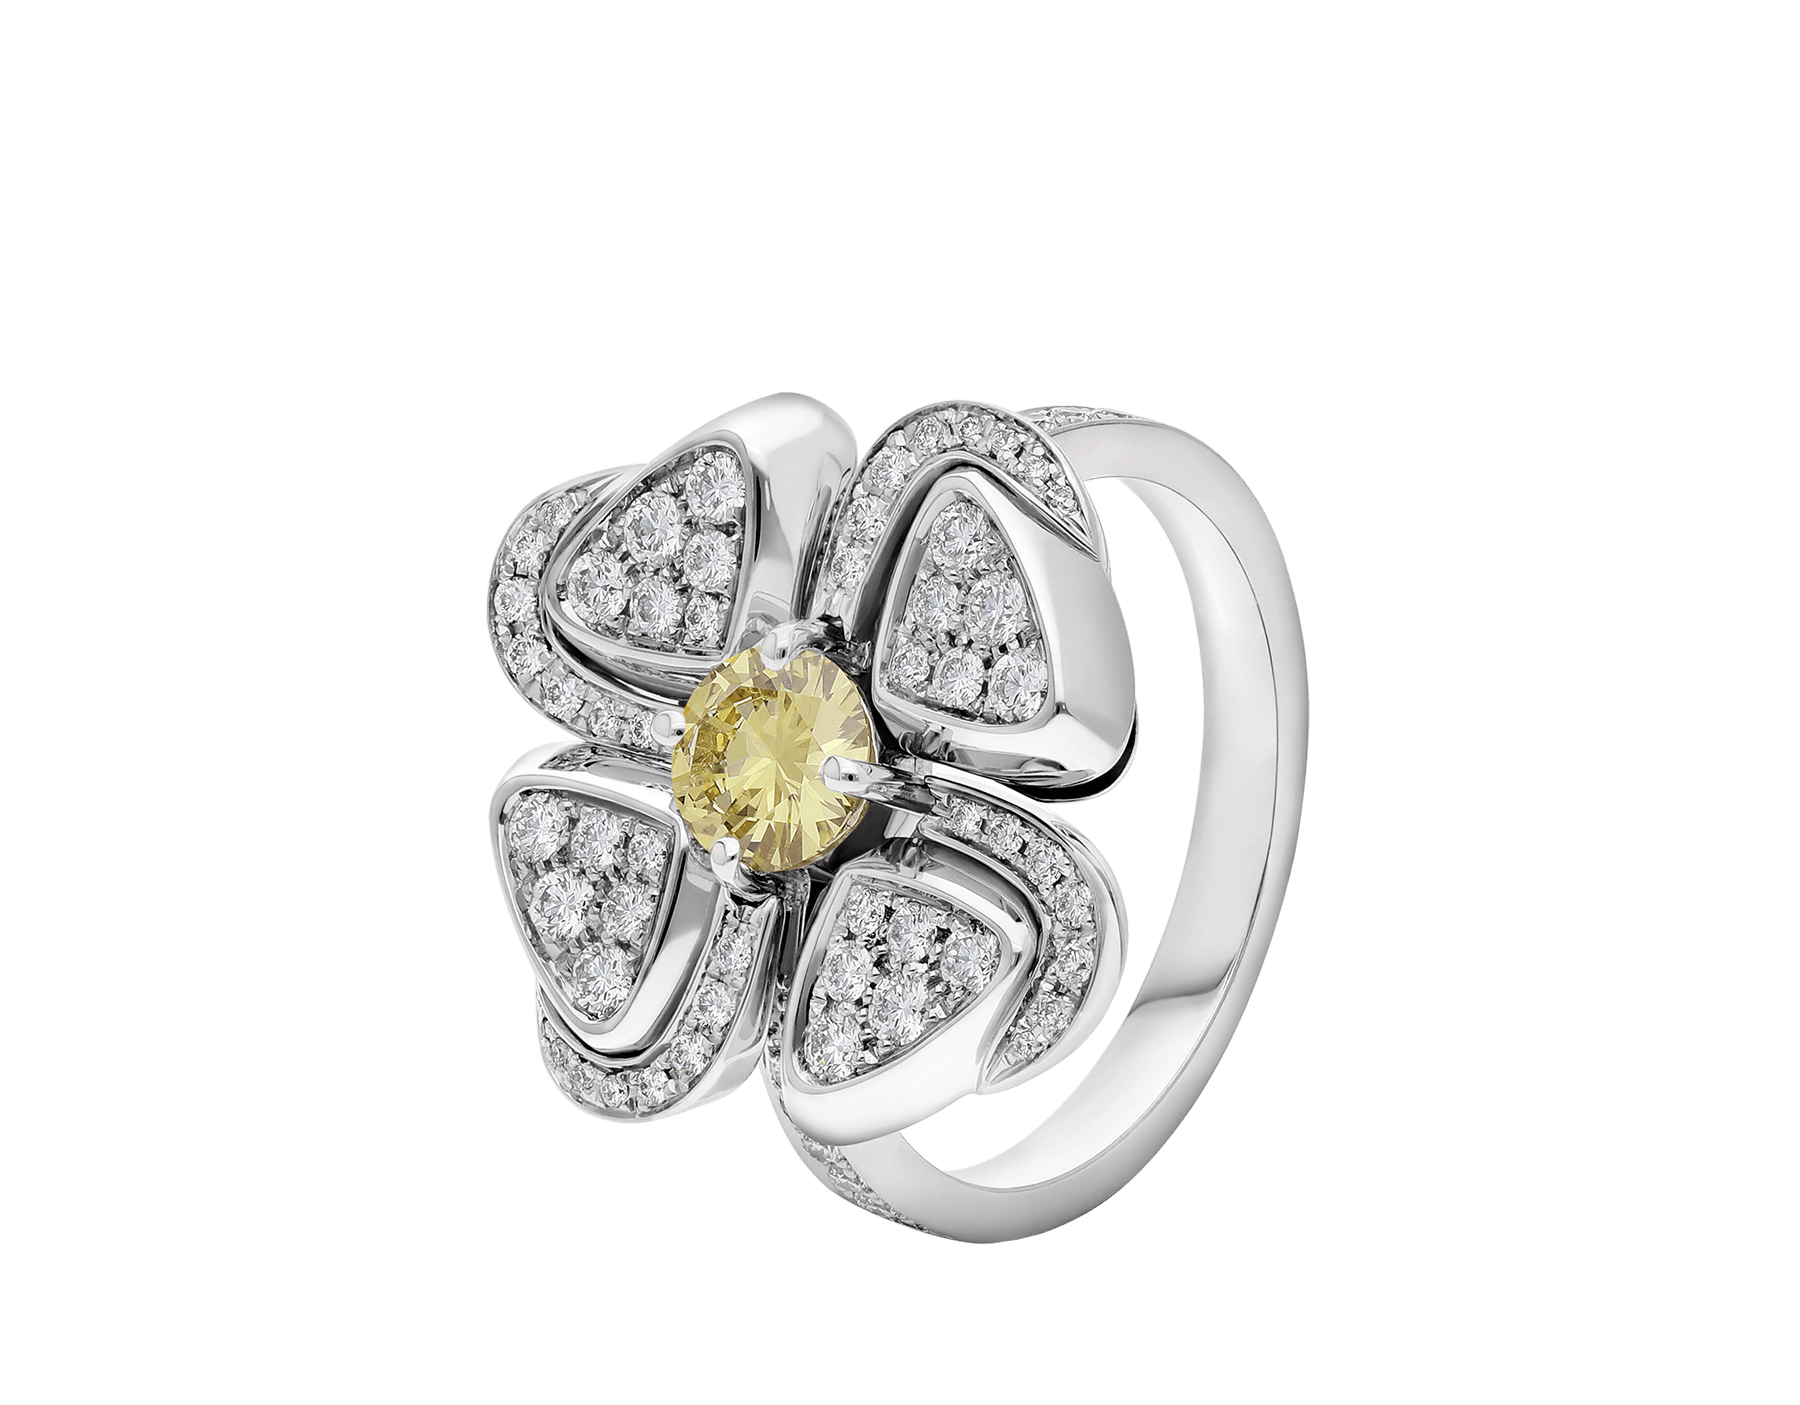 Fiorever 18 kt white gold ring set with one central yellow diamond (0.30 ct) and pavé diamonds AN858908 image 1